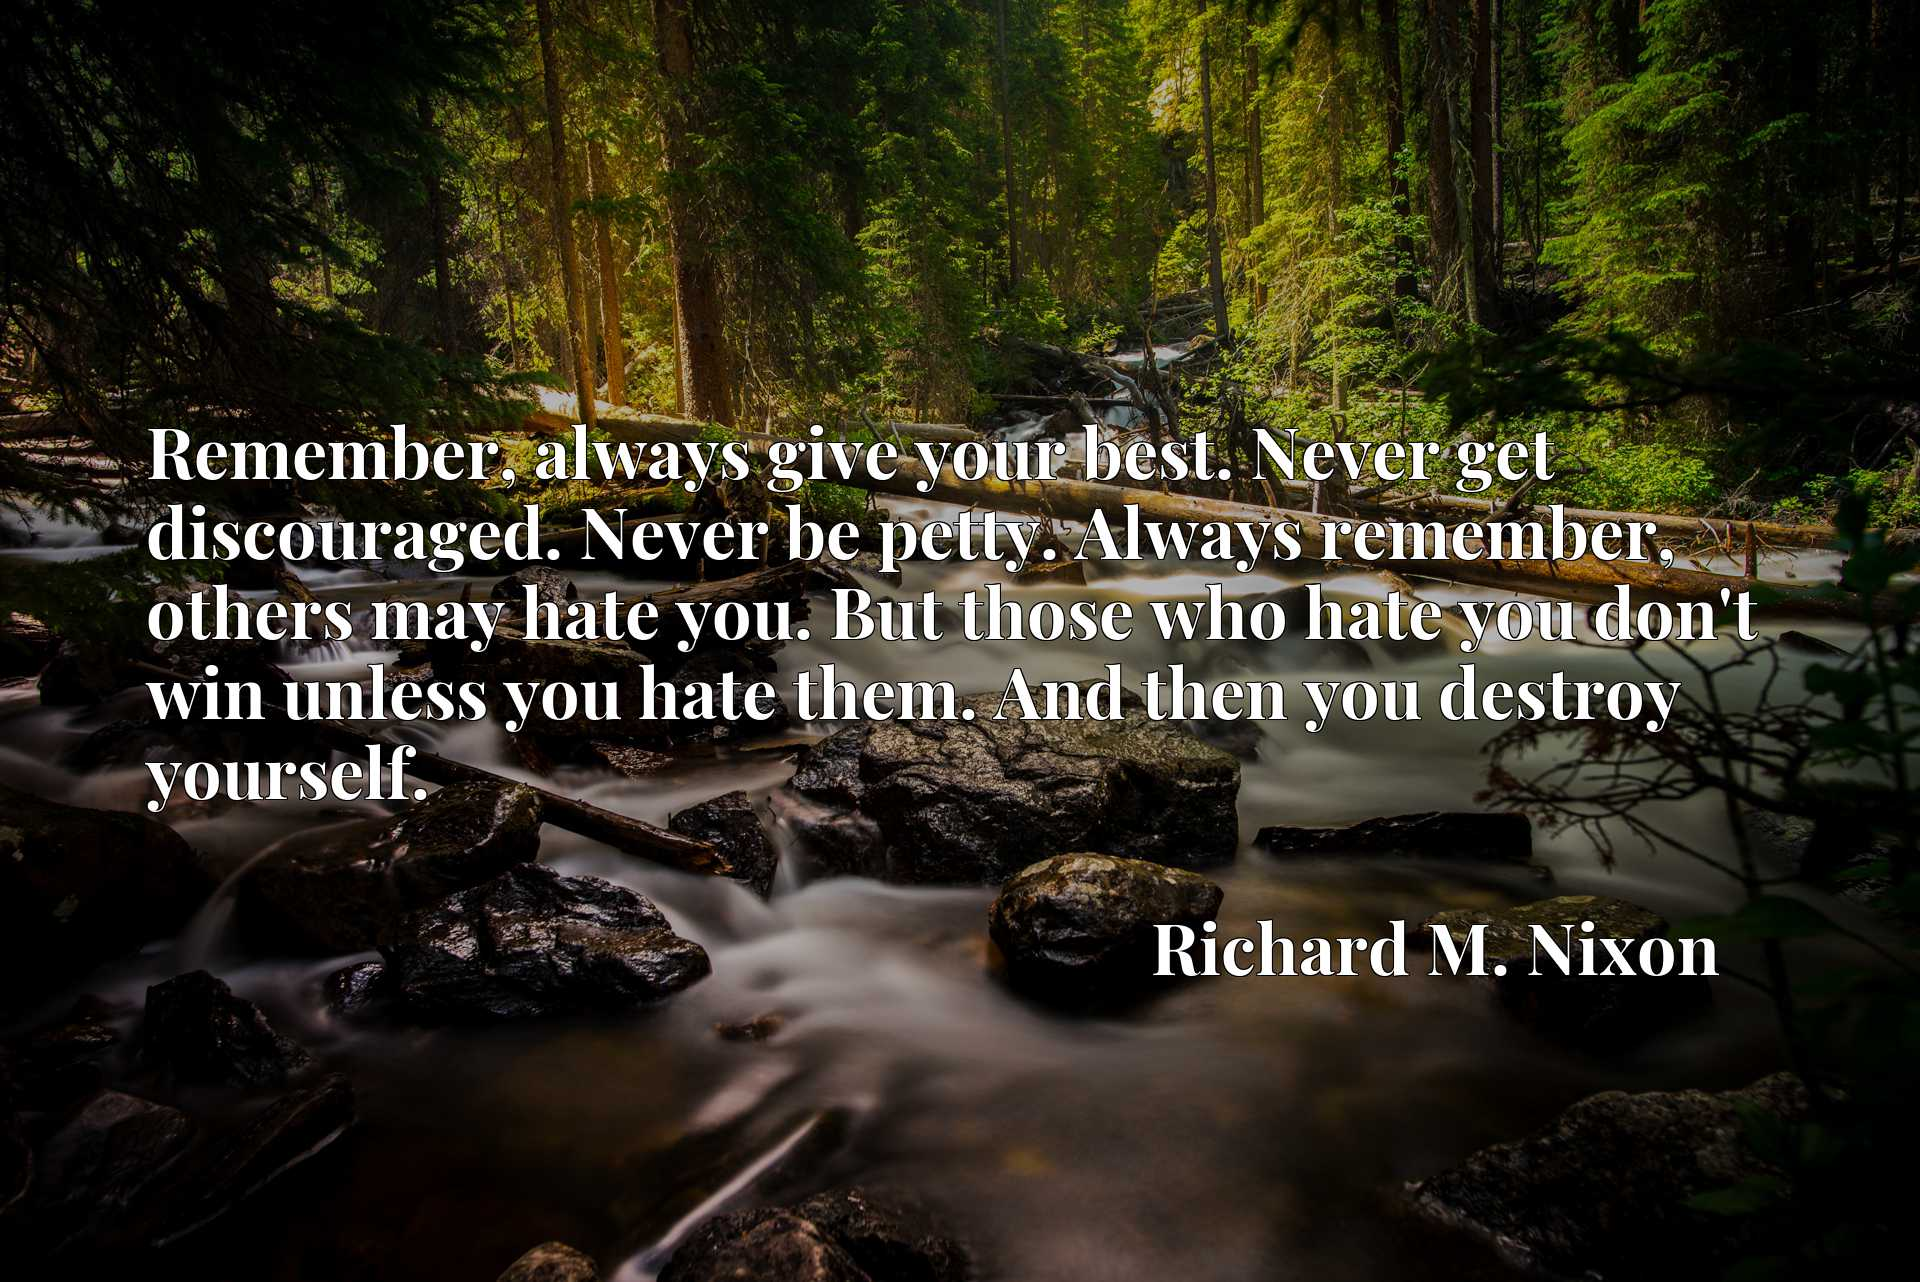 Remember, always give your best. Never get discouraged. Never be petty. Always remember, others may hate you. But those who hate you don't win unless you hate them. And then you destroy yourself.